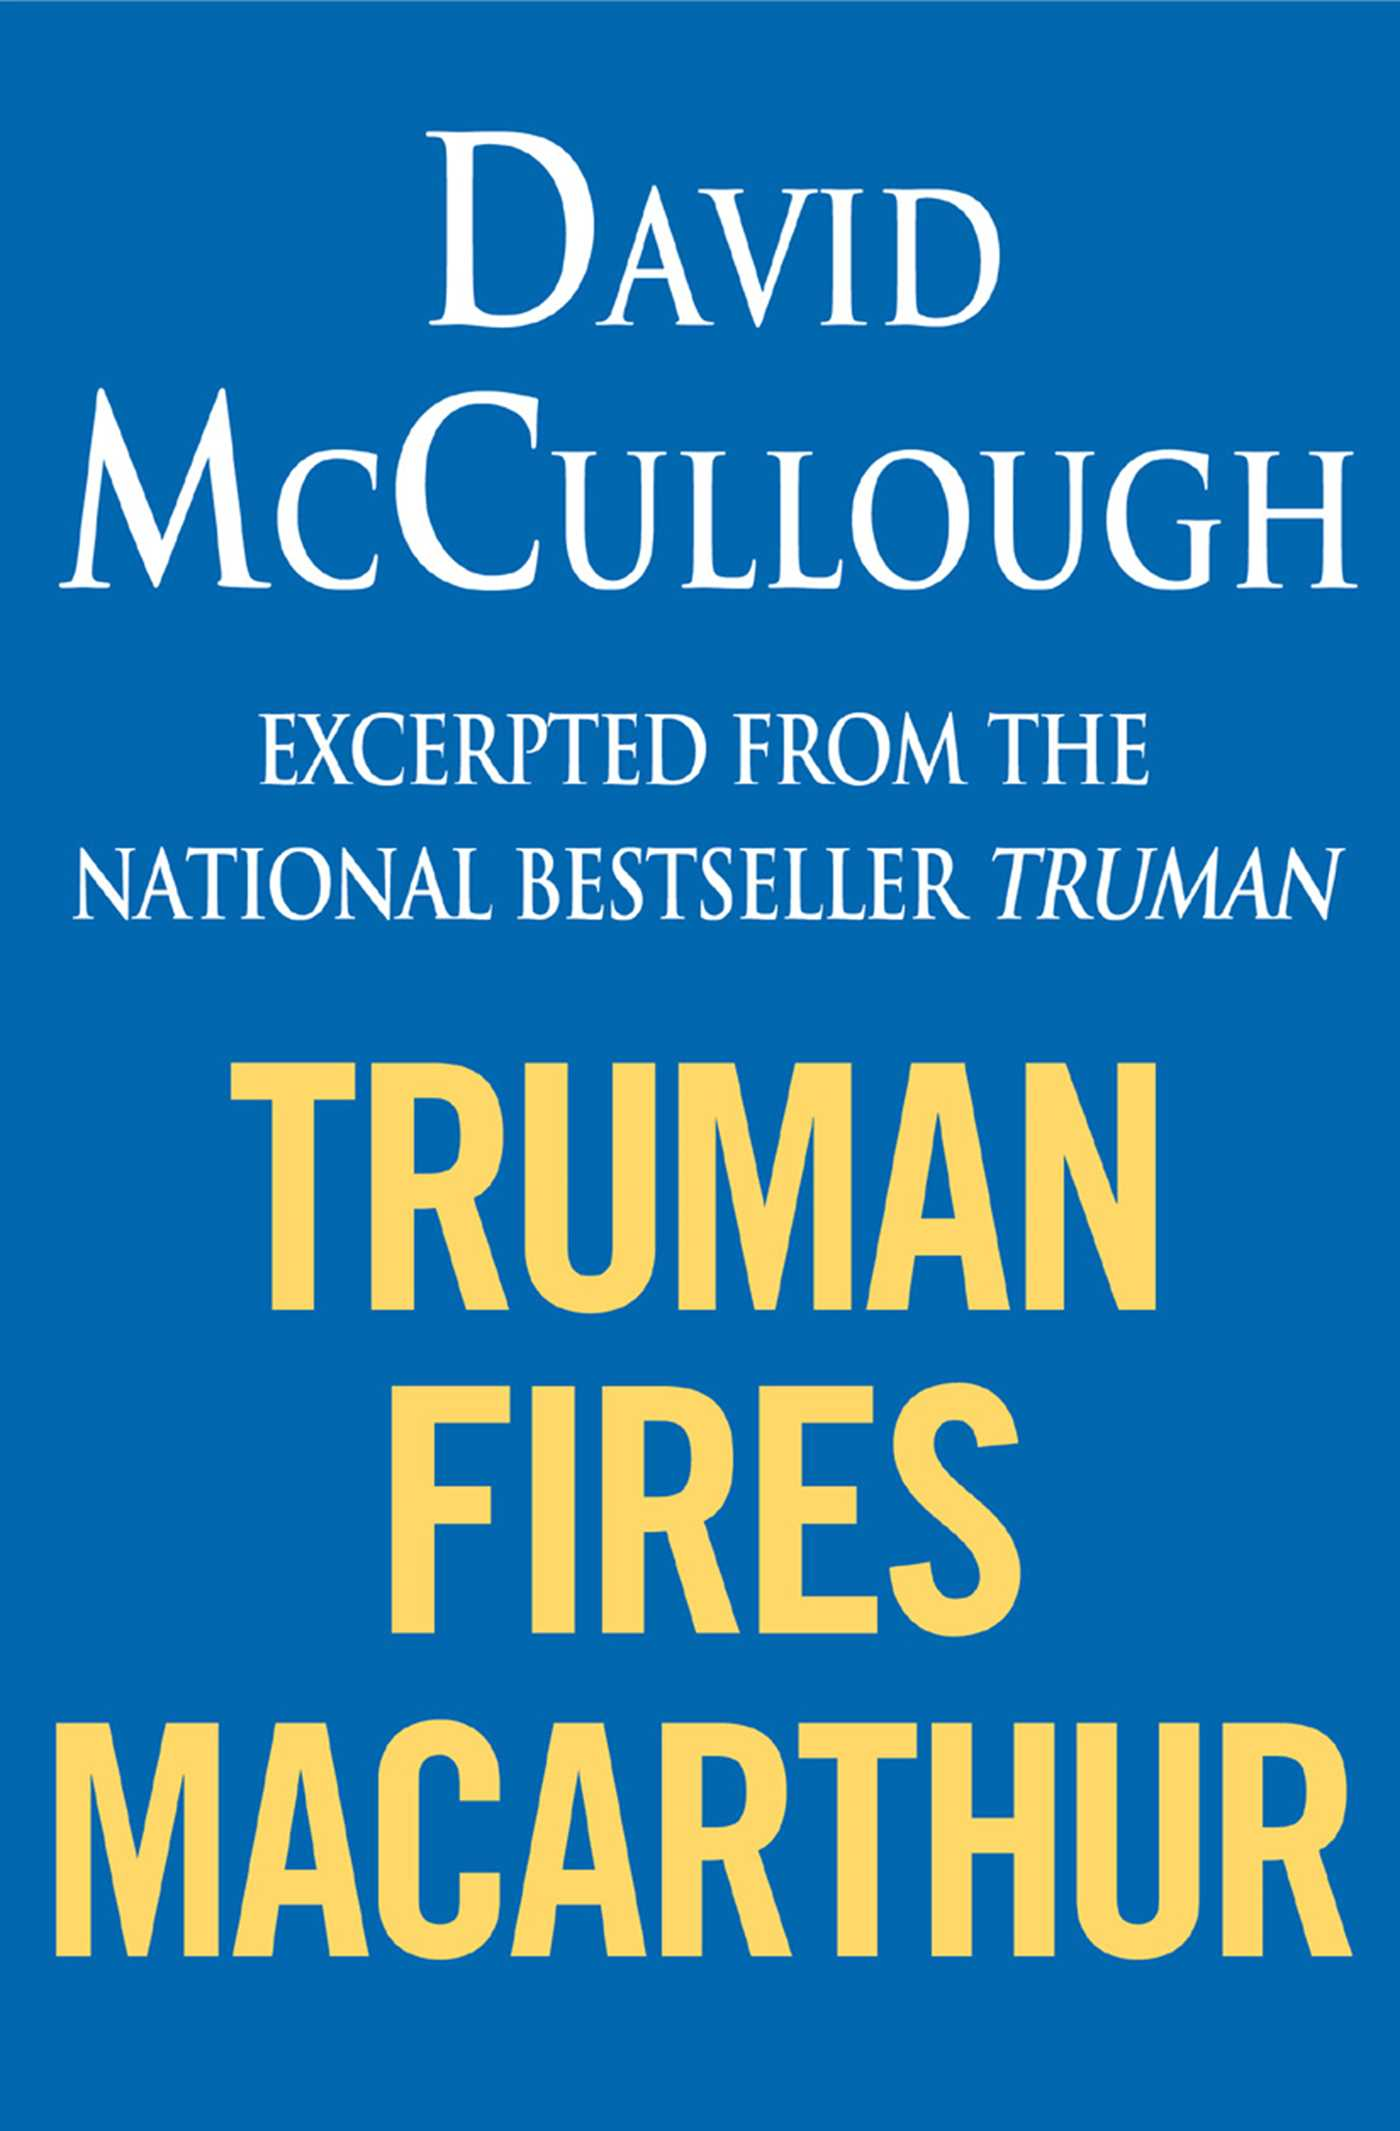 Book Cover Image (jpg): Truman Fires Macarthur (ebook Excerpt Of Truman)